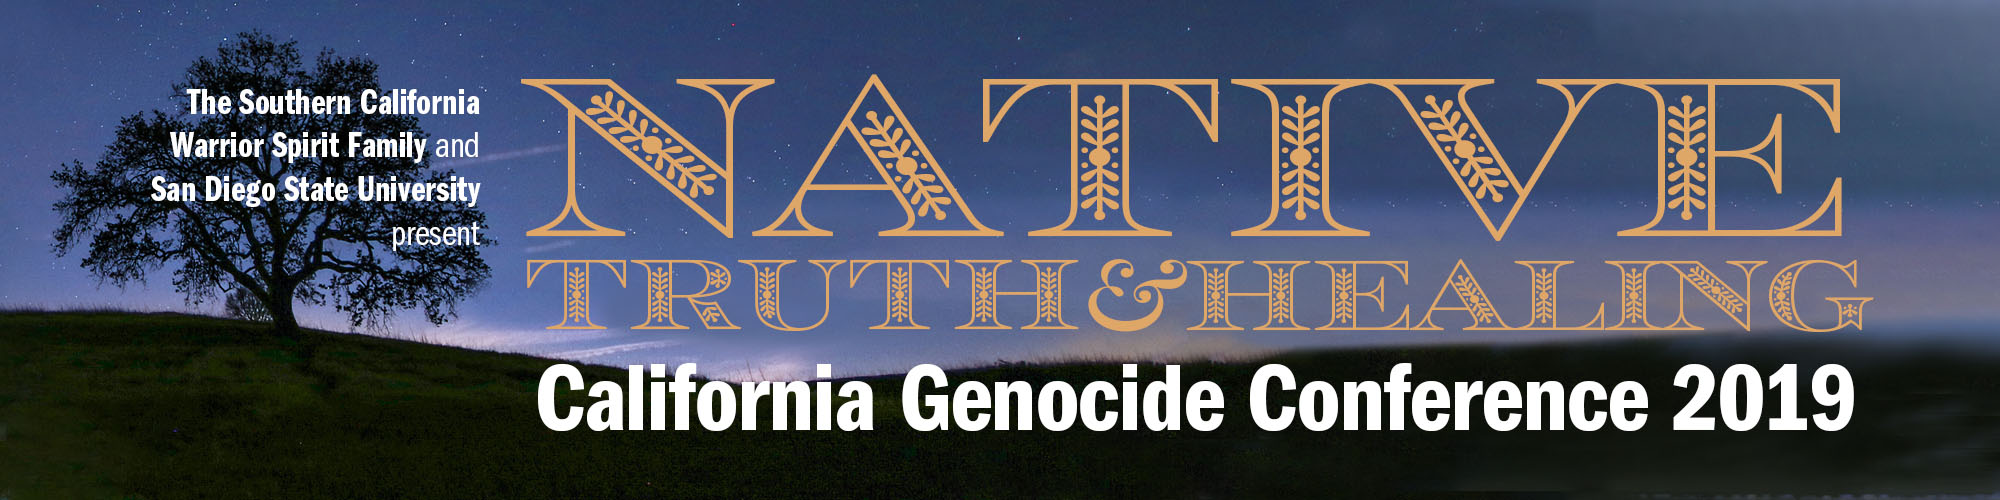 Native Truth and Healing - California Genocide Conference 2019 at San Diego State University